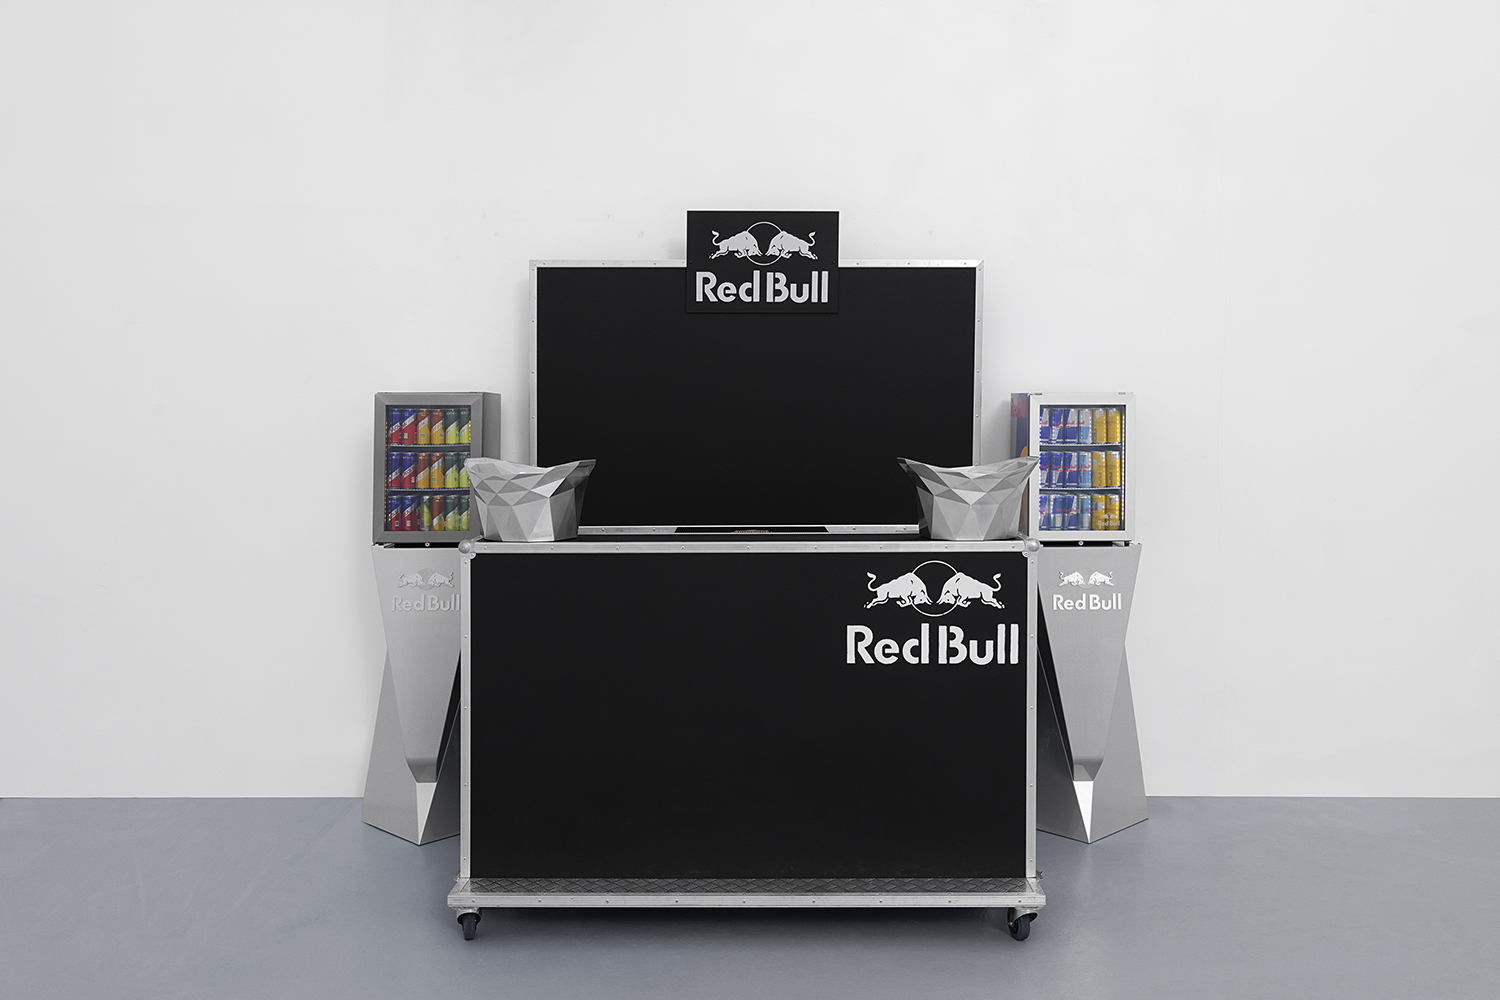 Red Bull Cocktail Bar,  Installation view, Red Bull Cocktail bar, Hussenot, Paris — Galerie Éric Hussenot, Paris